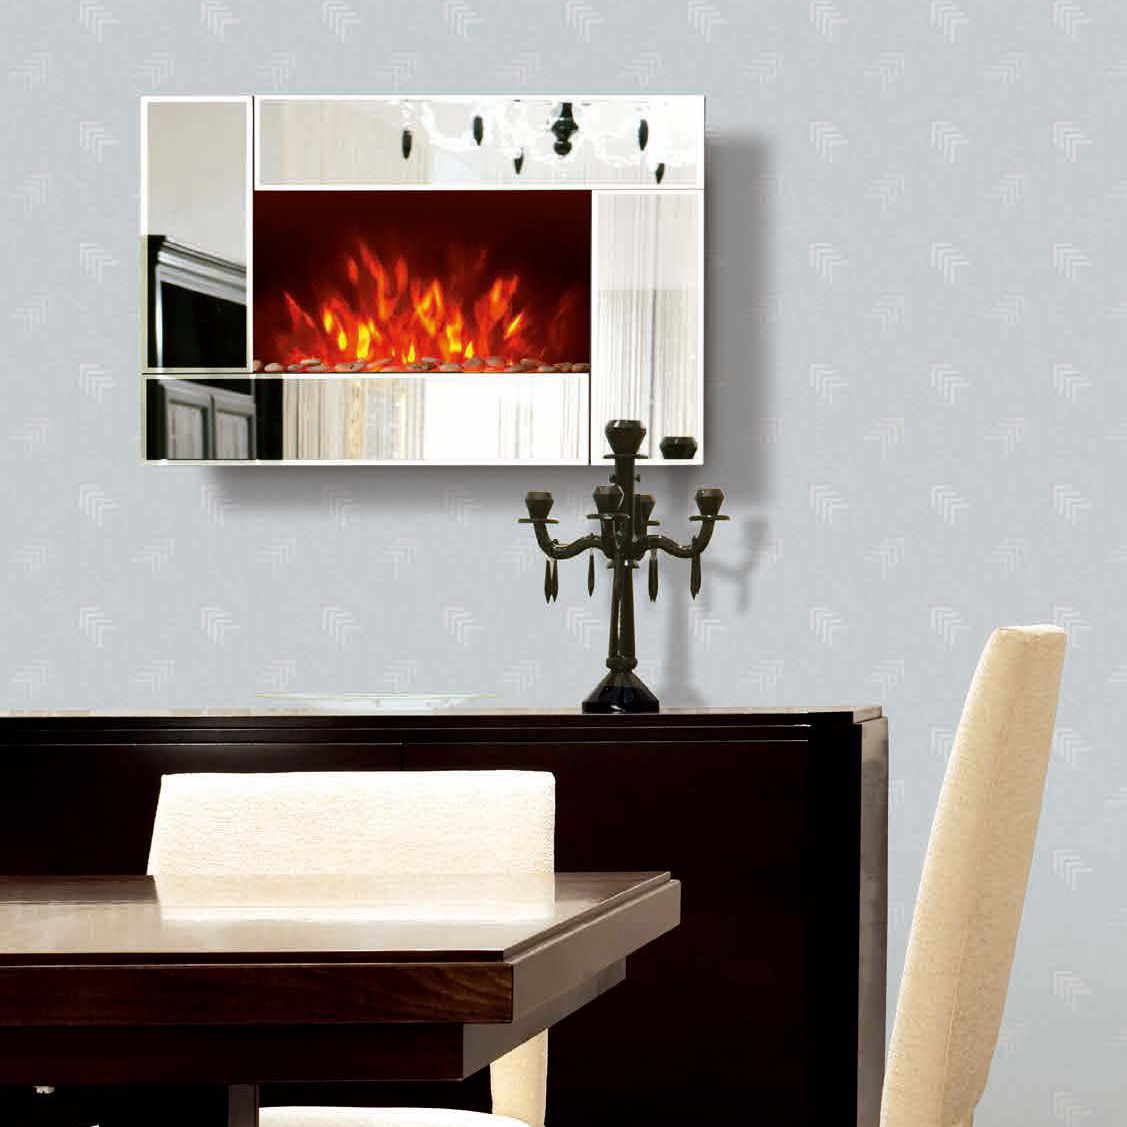 Fire Sense Wood Wall Mounted Electric Fireplace EF425S/EF425SP/EF425SL/EF425K mirror Chimenea Sentik